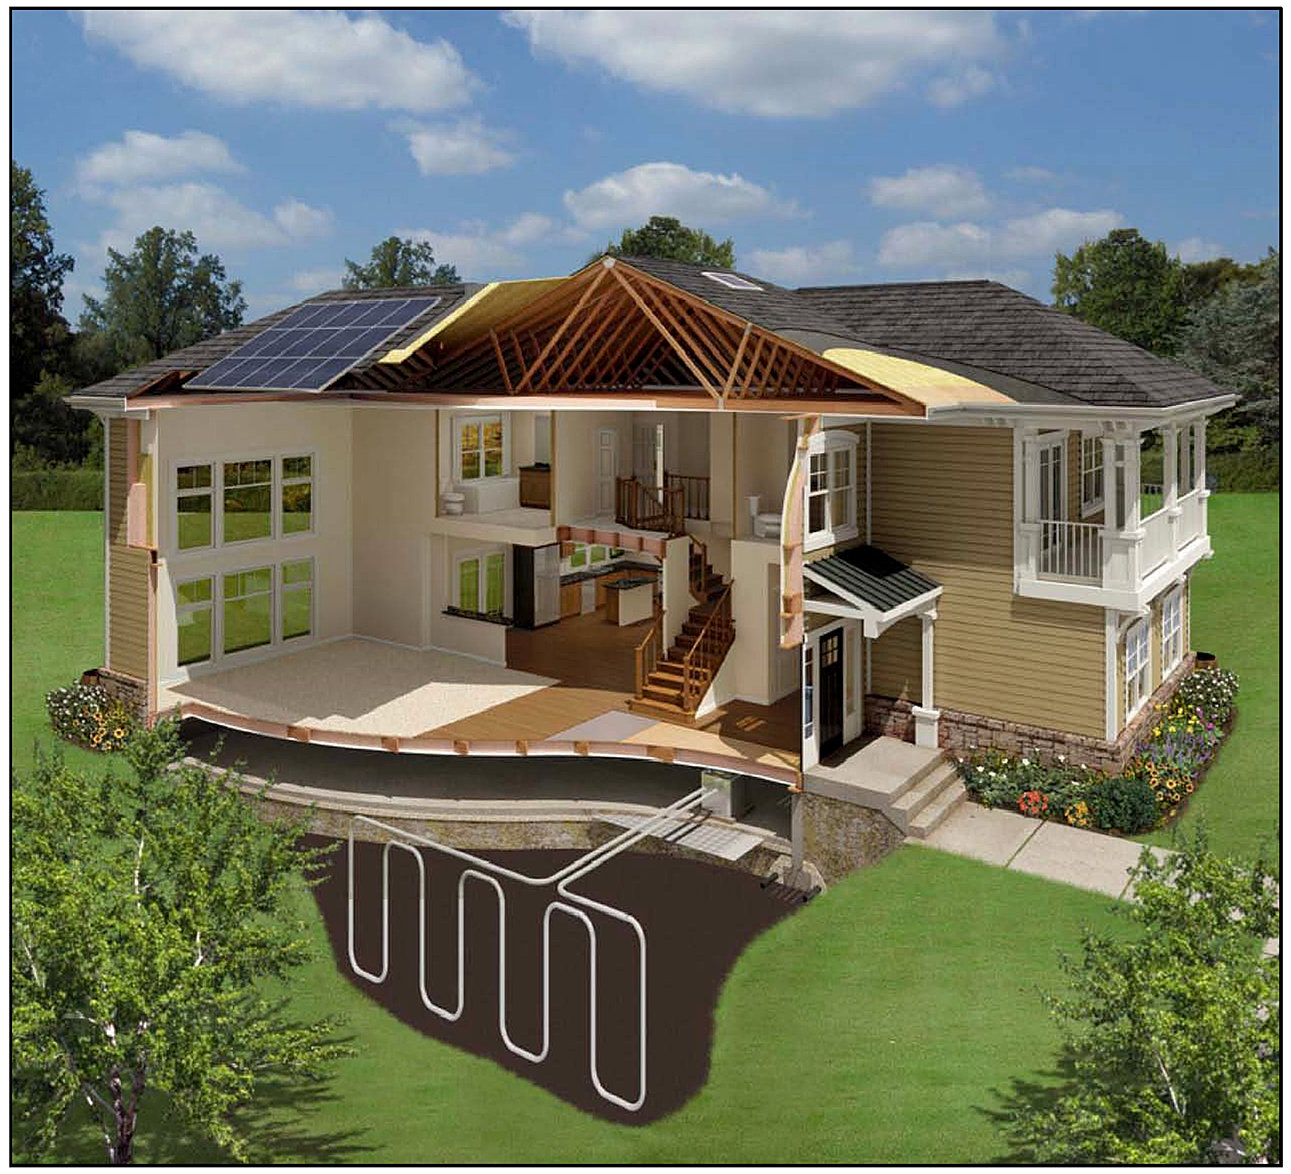 Sustainable Design Group | Green, Grid-Independent Custom Homes